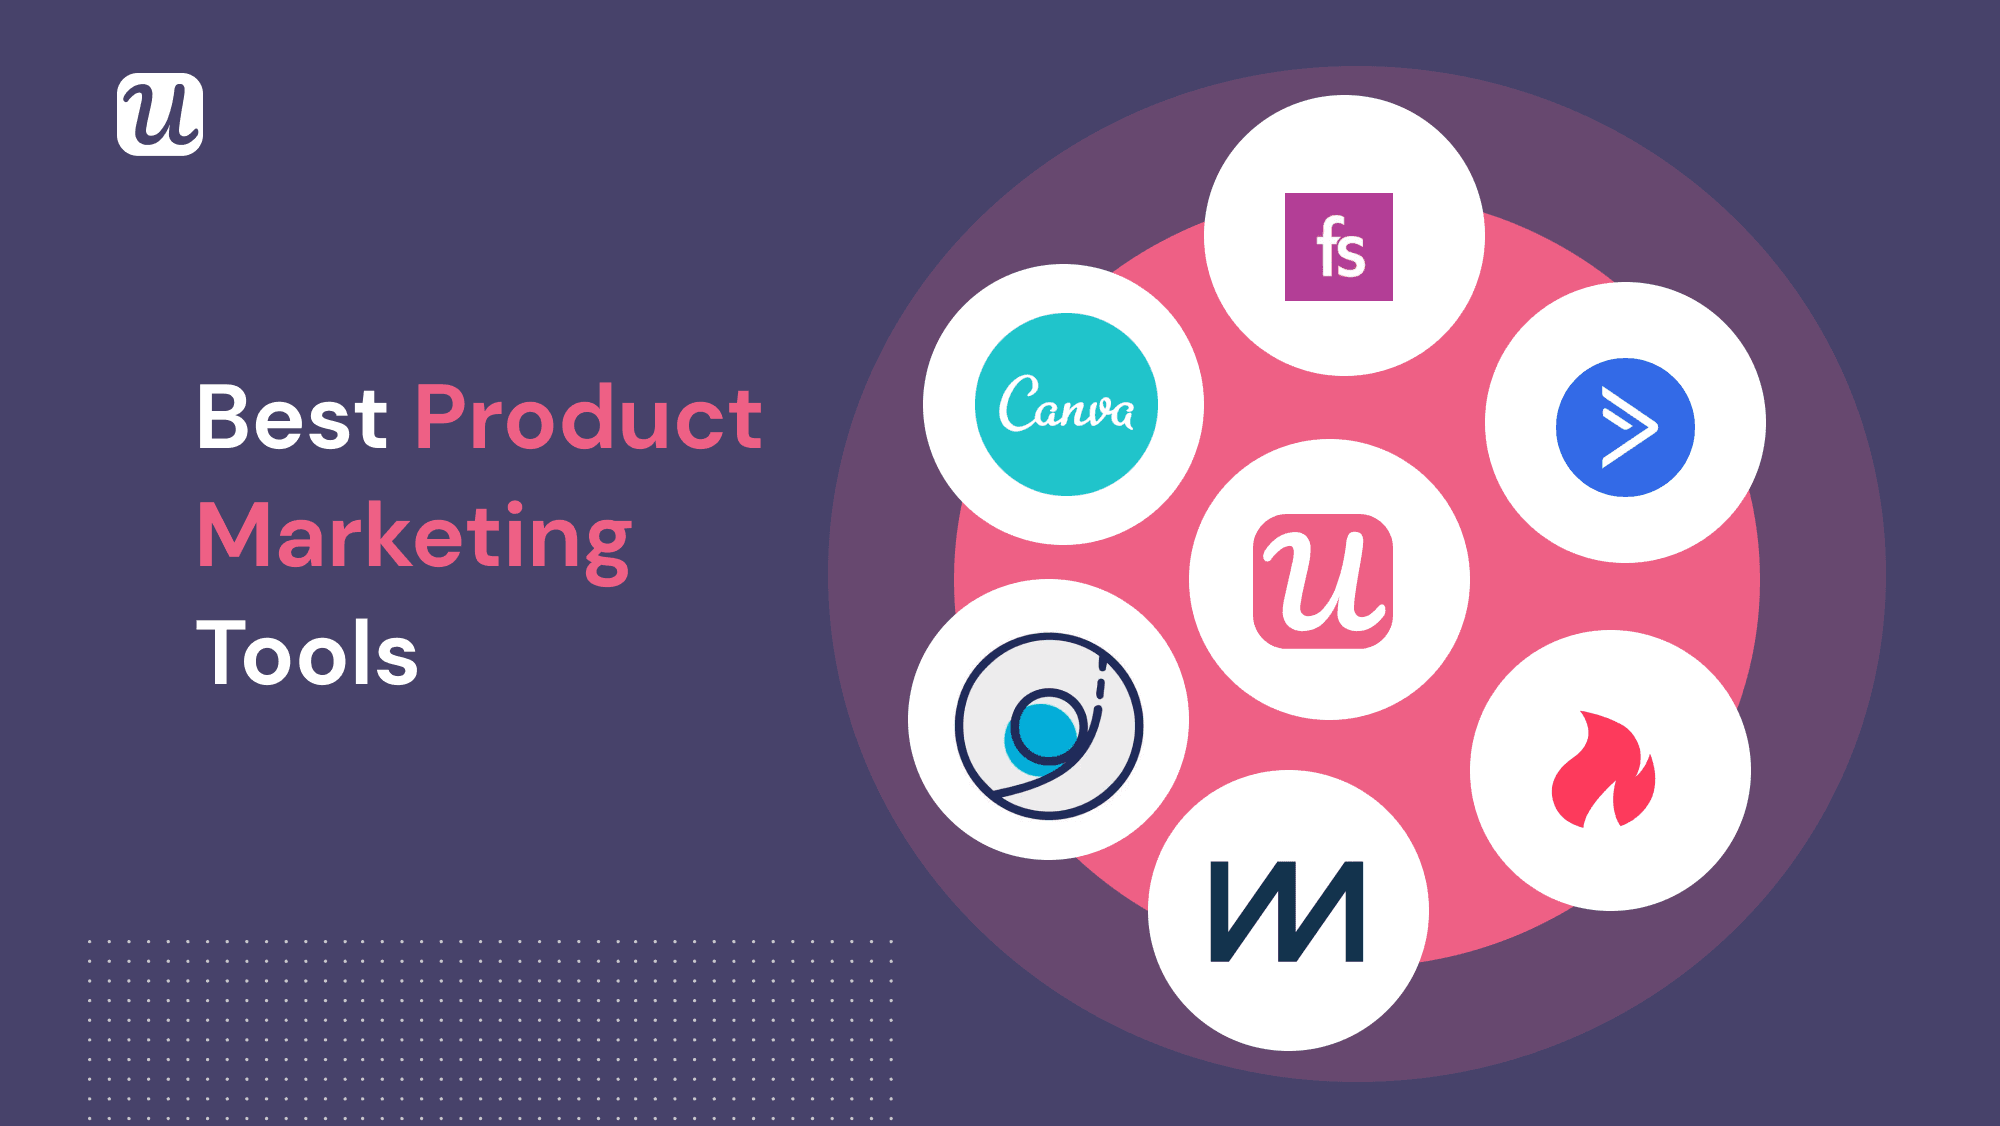 10 Must-Have Code-Free Product Marketing Tools - The Only Tools You'll Really Need As a Product Marketers